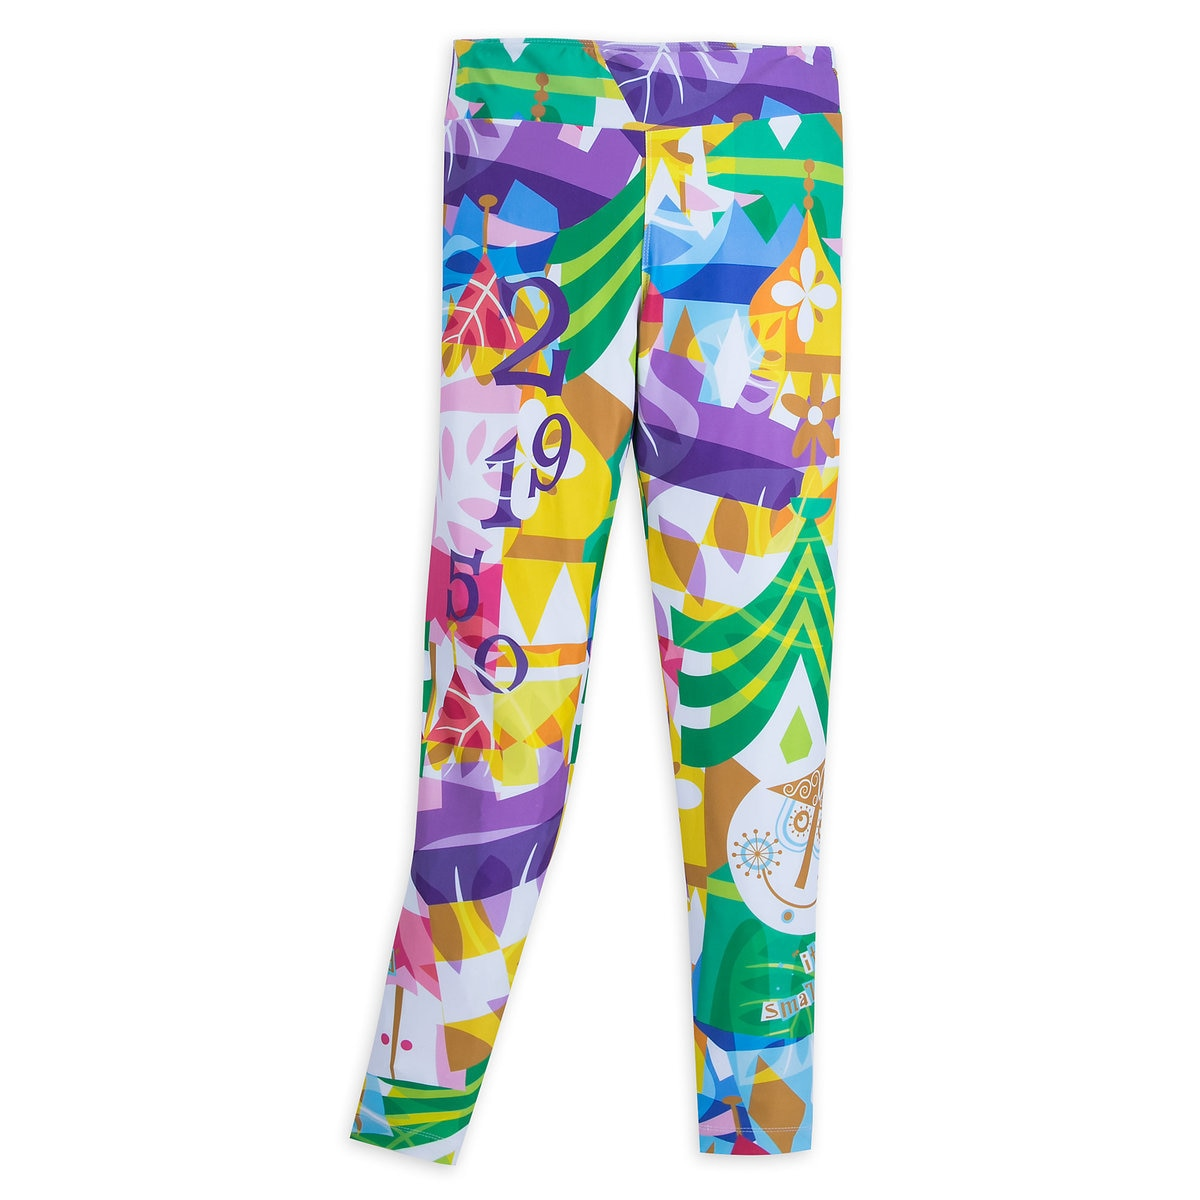 aec751e3d2f13 Product Image of Disney it's a small world Leggings for Women # 1